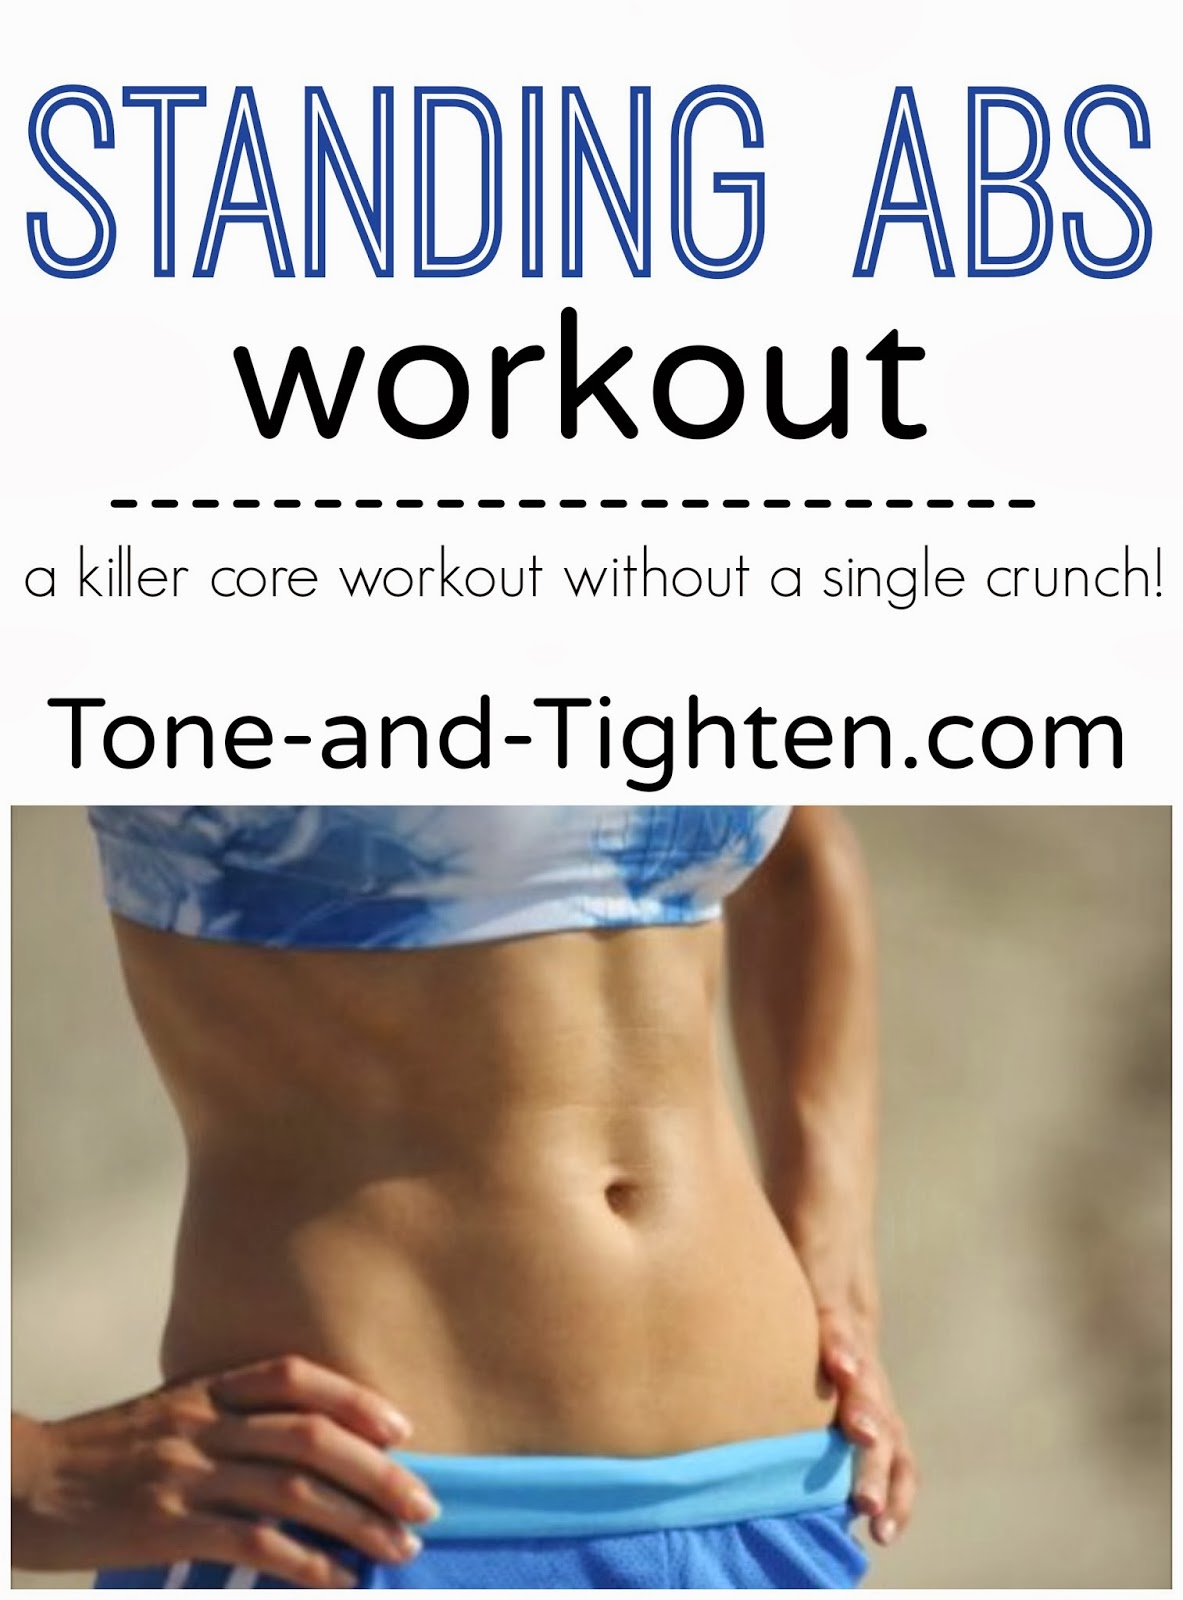 Follow Here For More Great Fitness Ideas